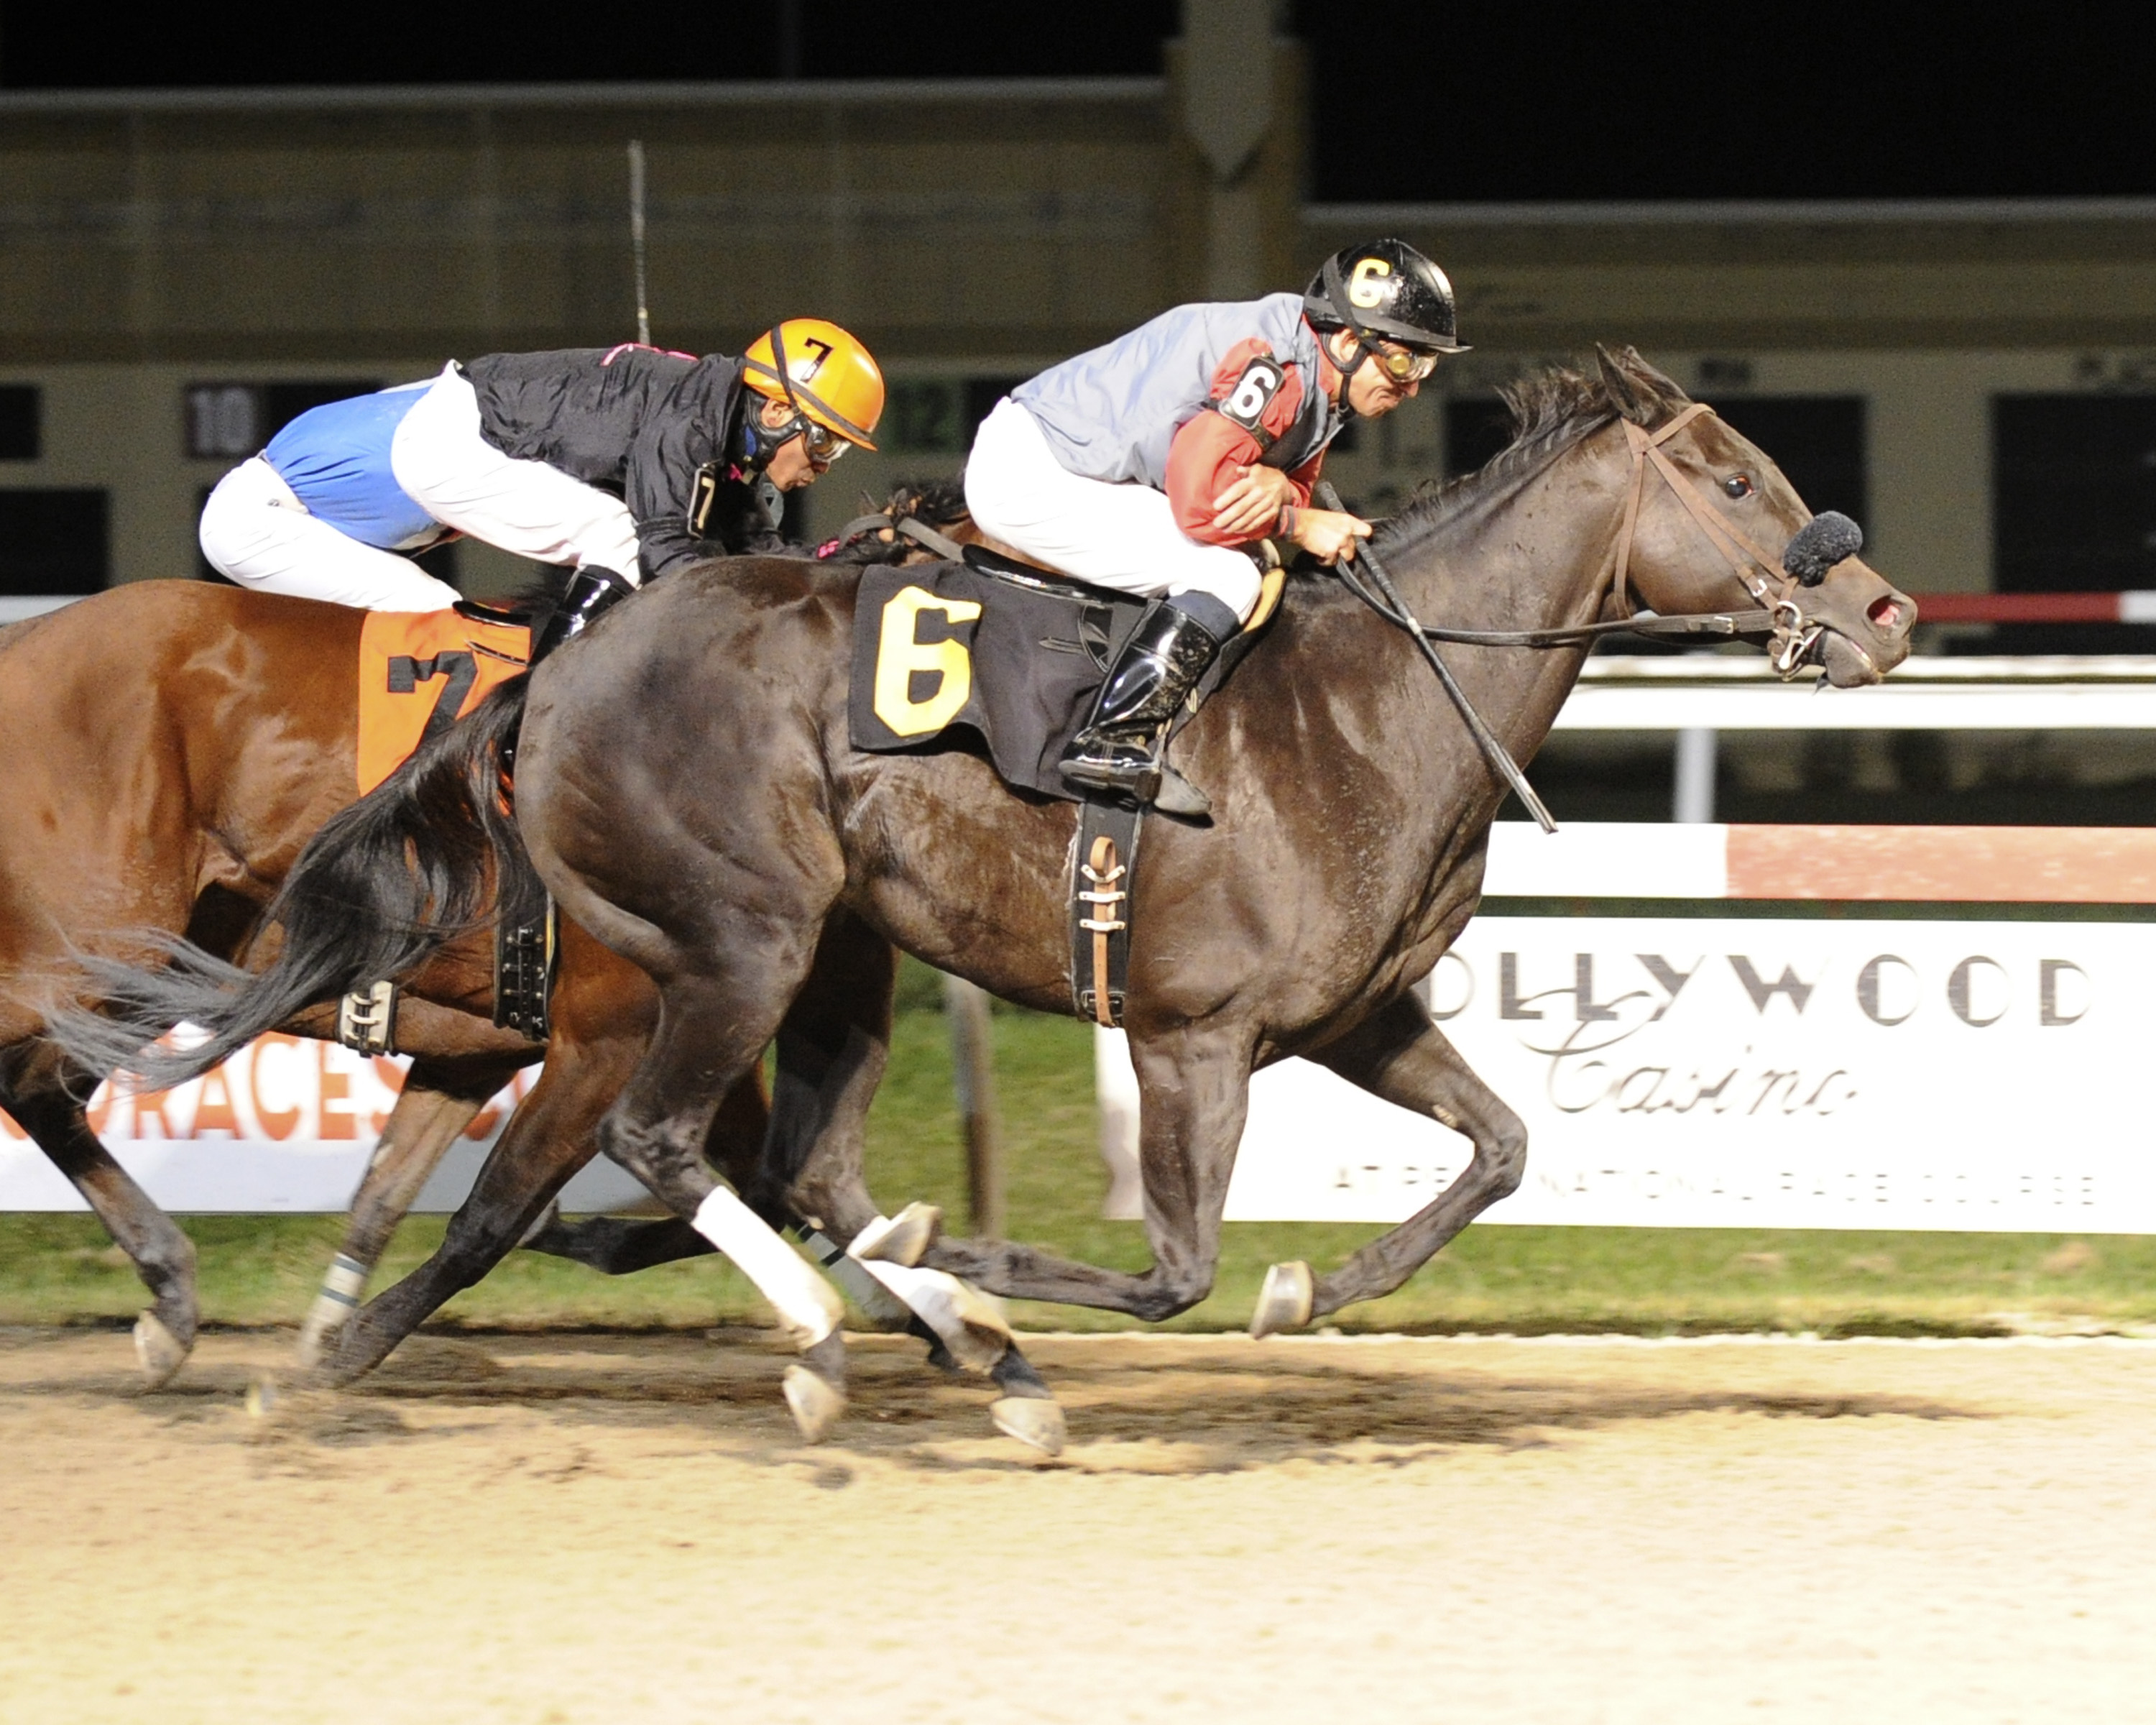 True Cost, bred by Anne Tucker, won a tight half length triumph over Deliver Me at Penn National in a $32,850 claiming event. Photo by B&D Photography.